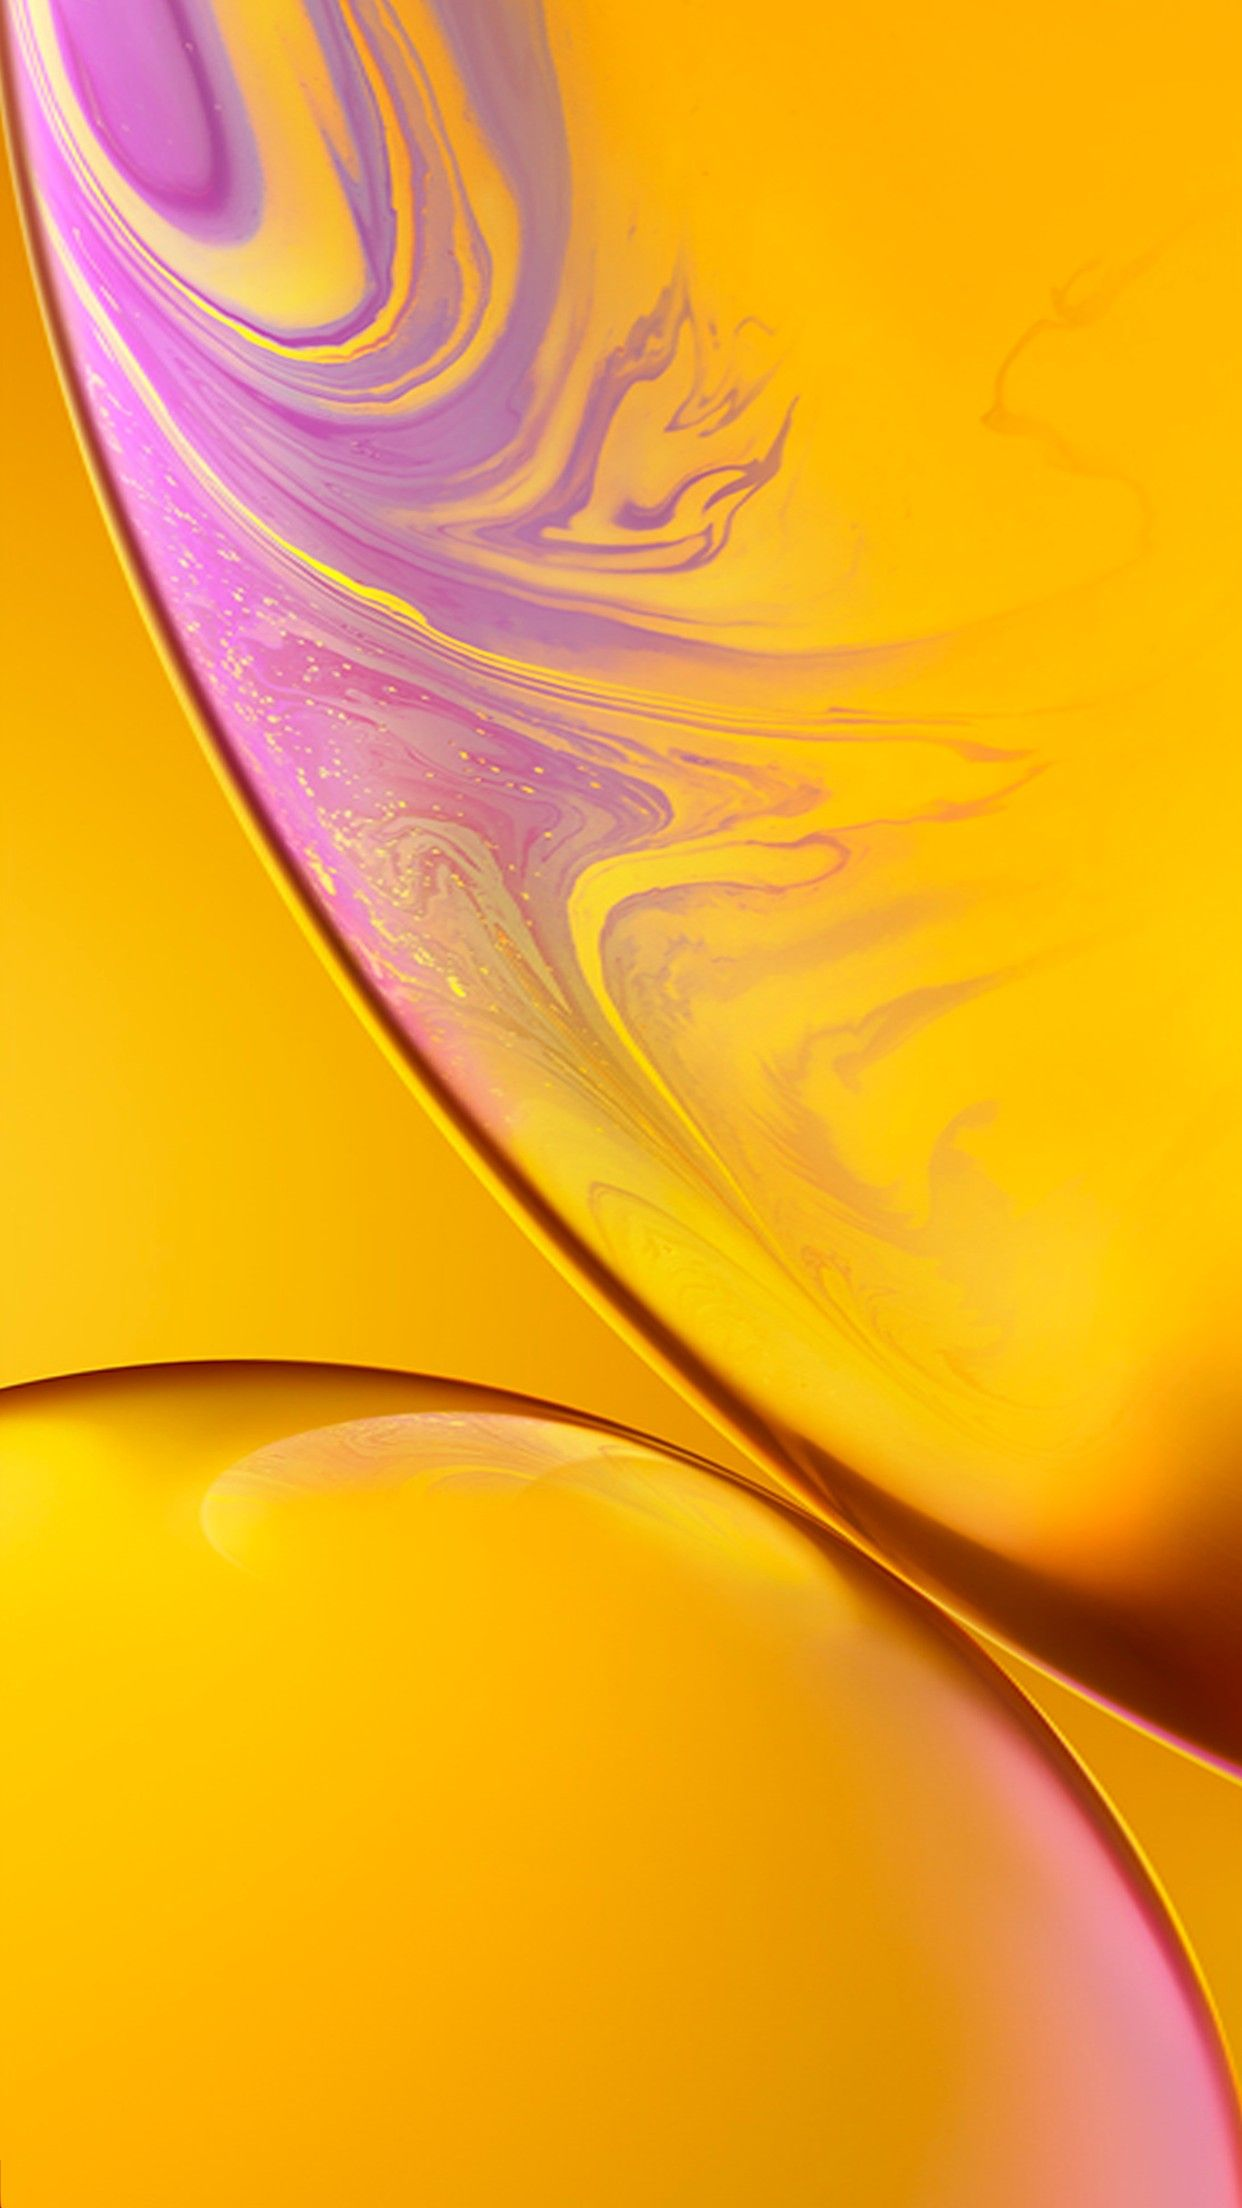 Iphone Xr Abstract Amoled Liquid Gradient Iphone Wallpaper